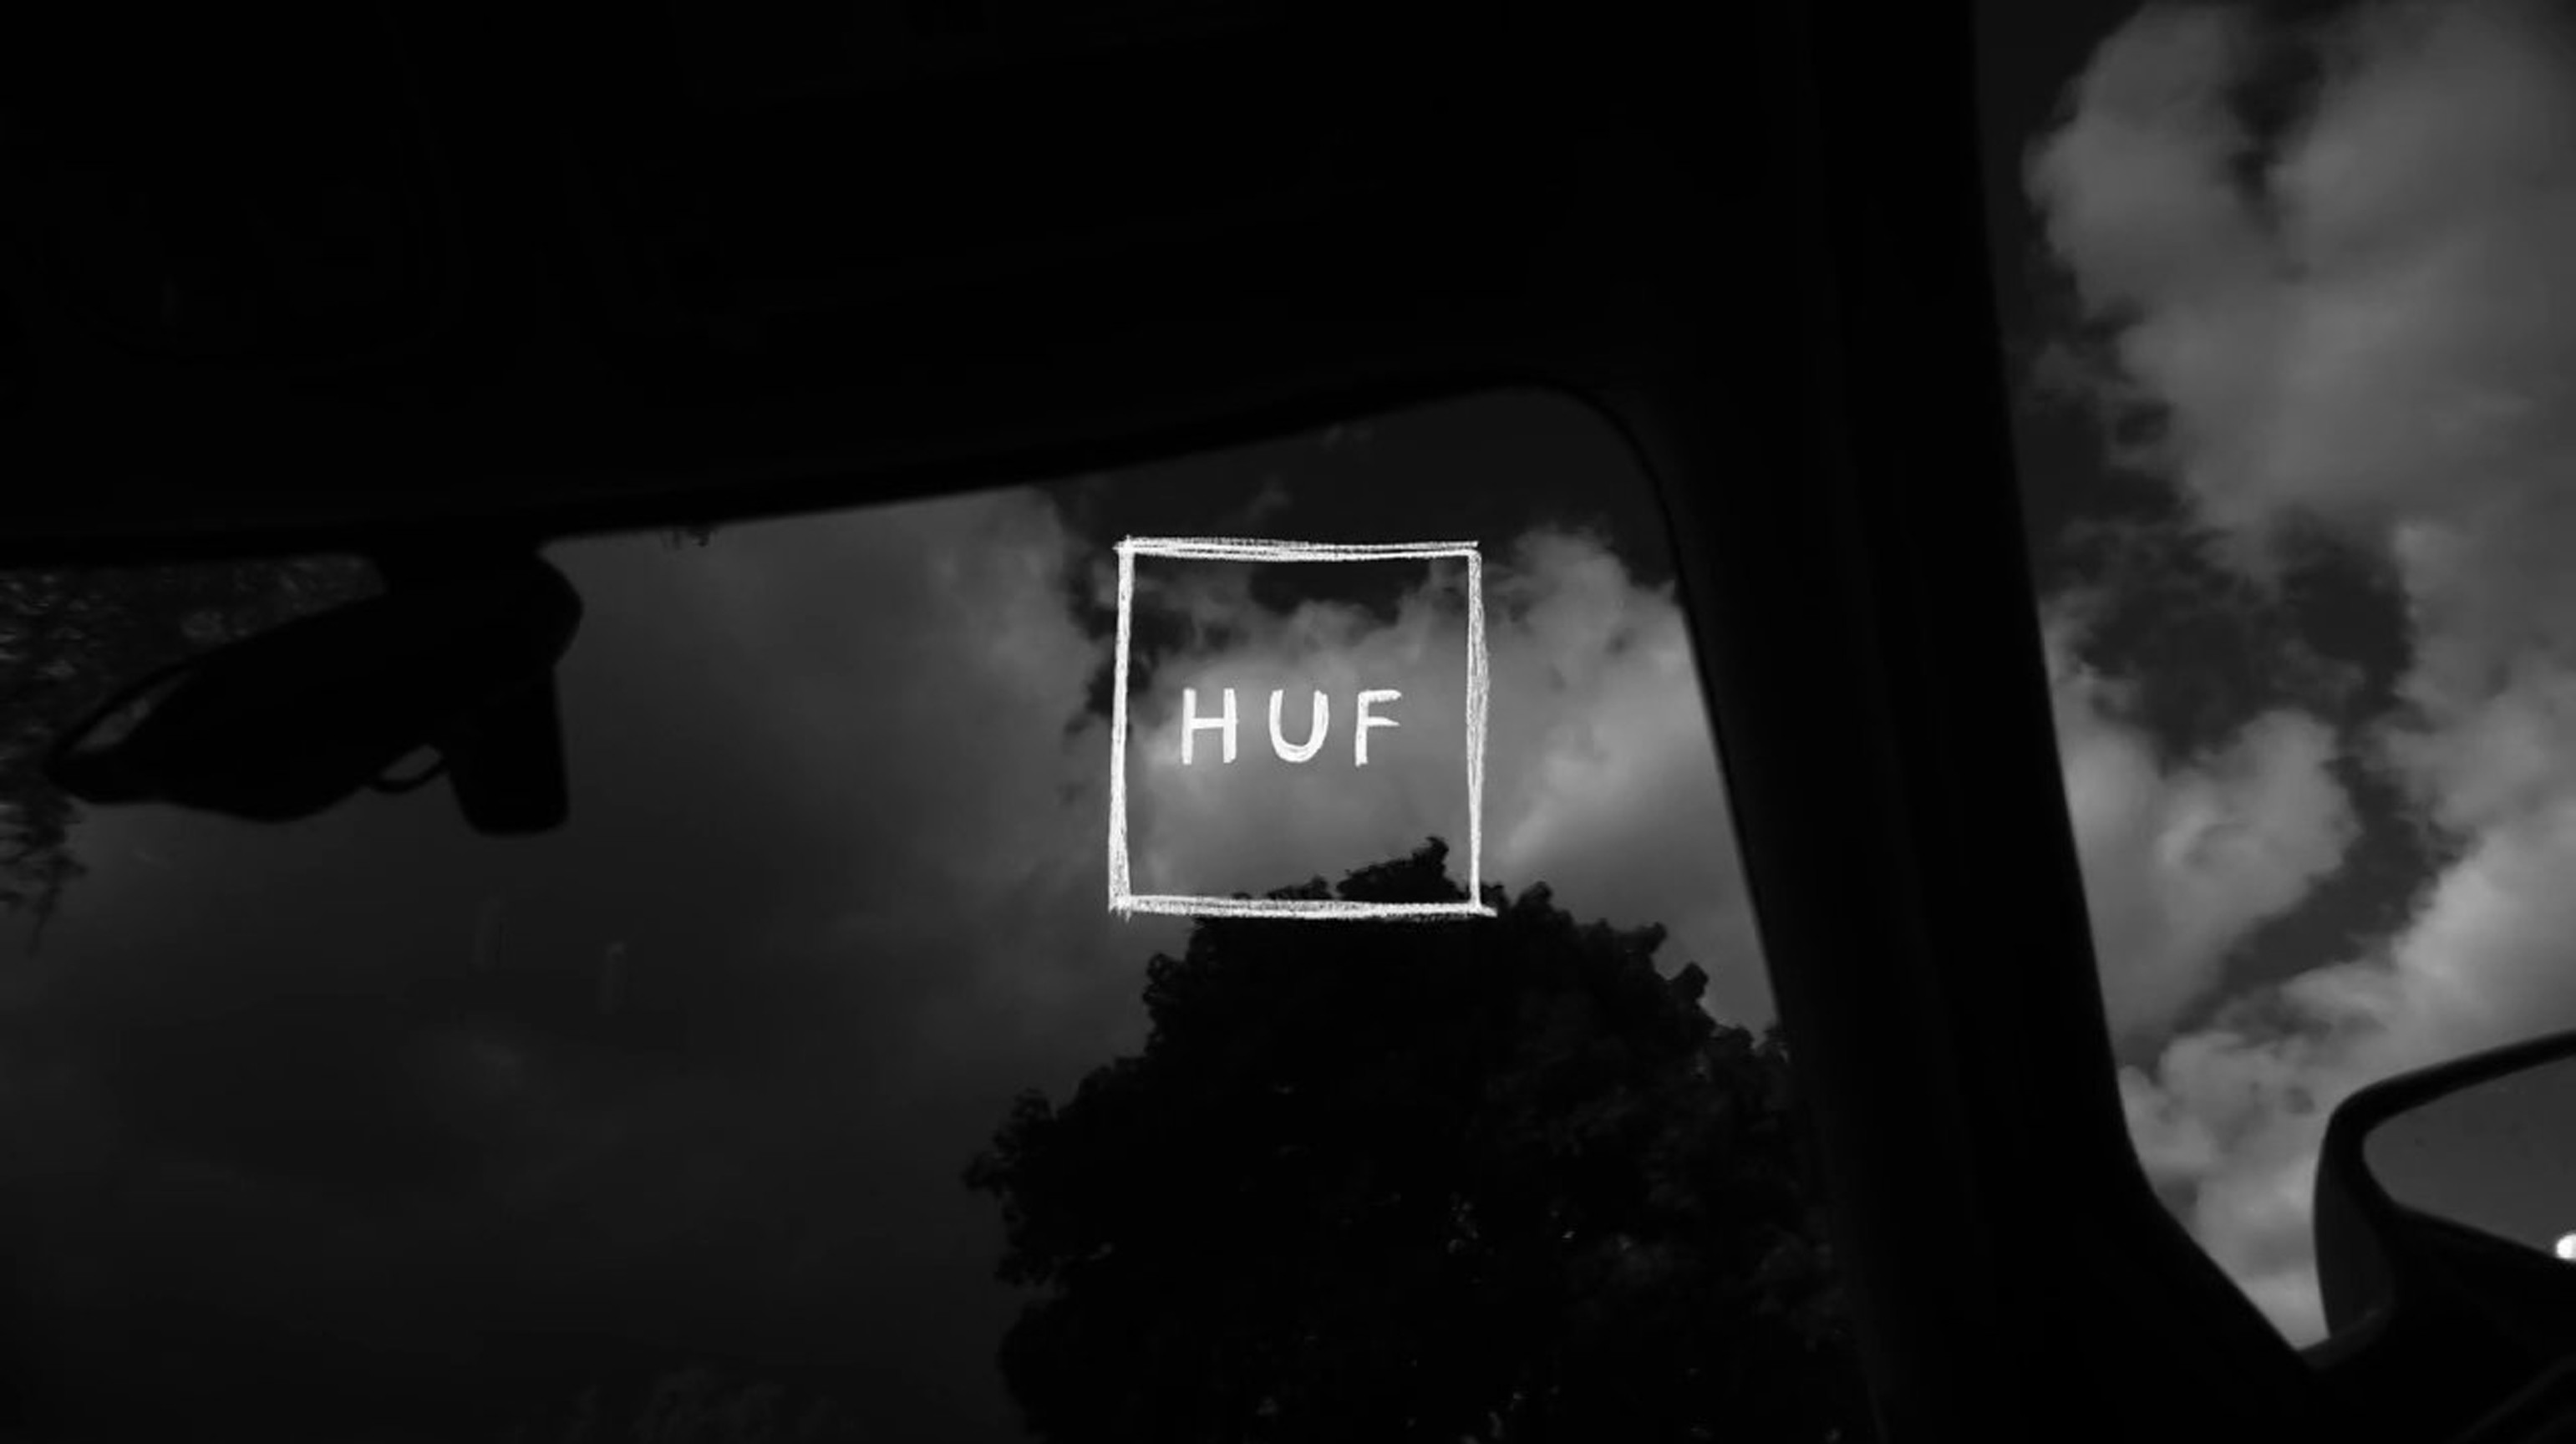 Huf wallpapers 68 images 1920x1080 diamond supply wallpapers hd wallpapercraft voltagebd Choice Image